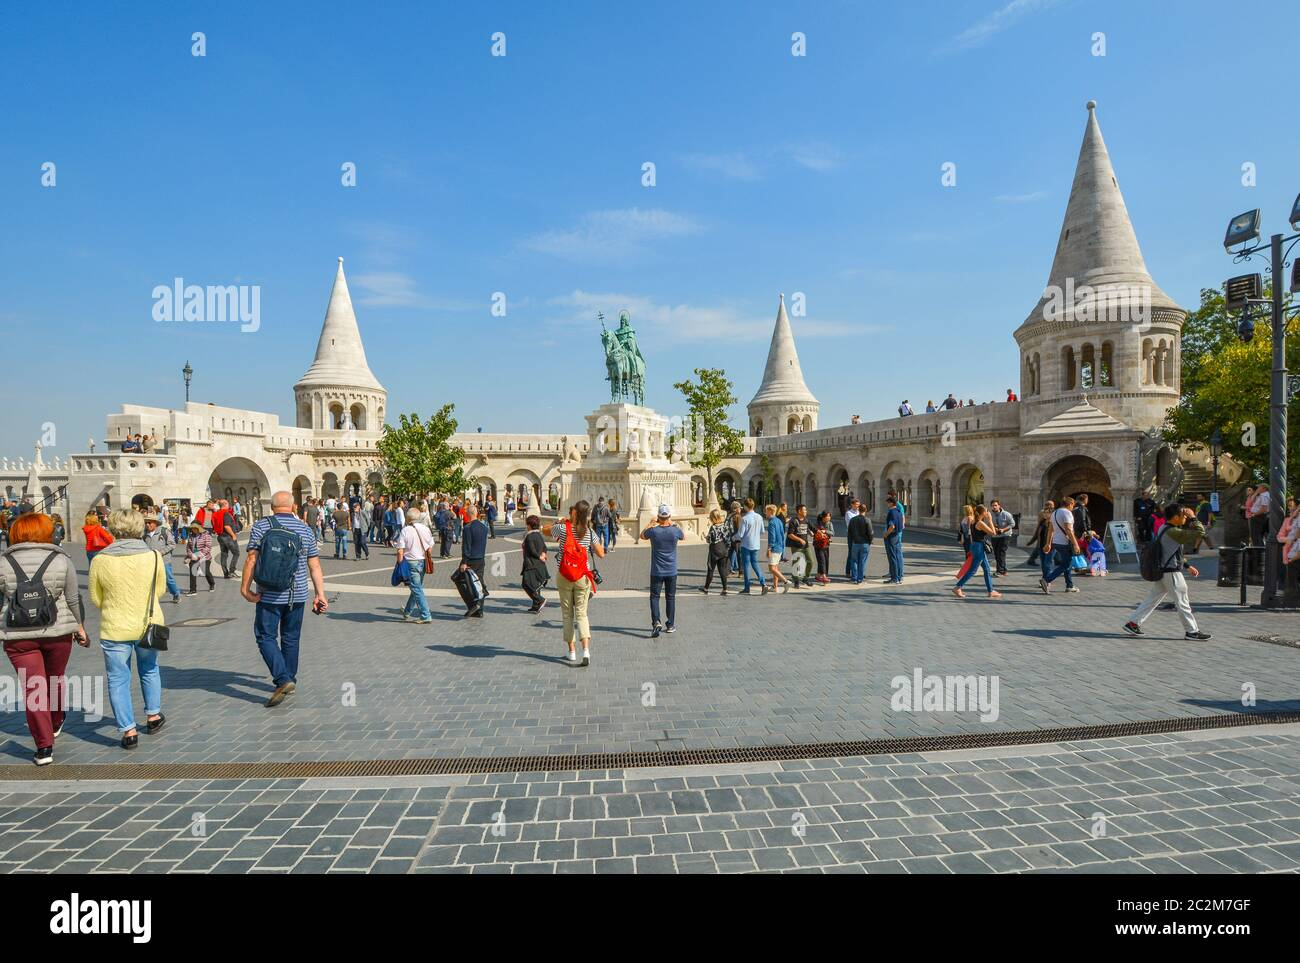 Tourists visit the Matthias Church square with the Fisherman's Bastion and statue of Saint Stephen I at the Buda Castle Complex in Budapest, Hungary Stock Photo